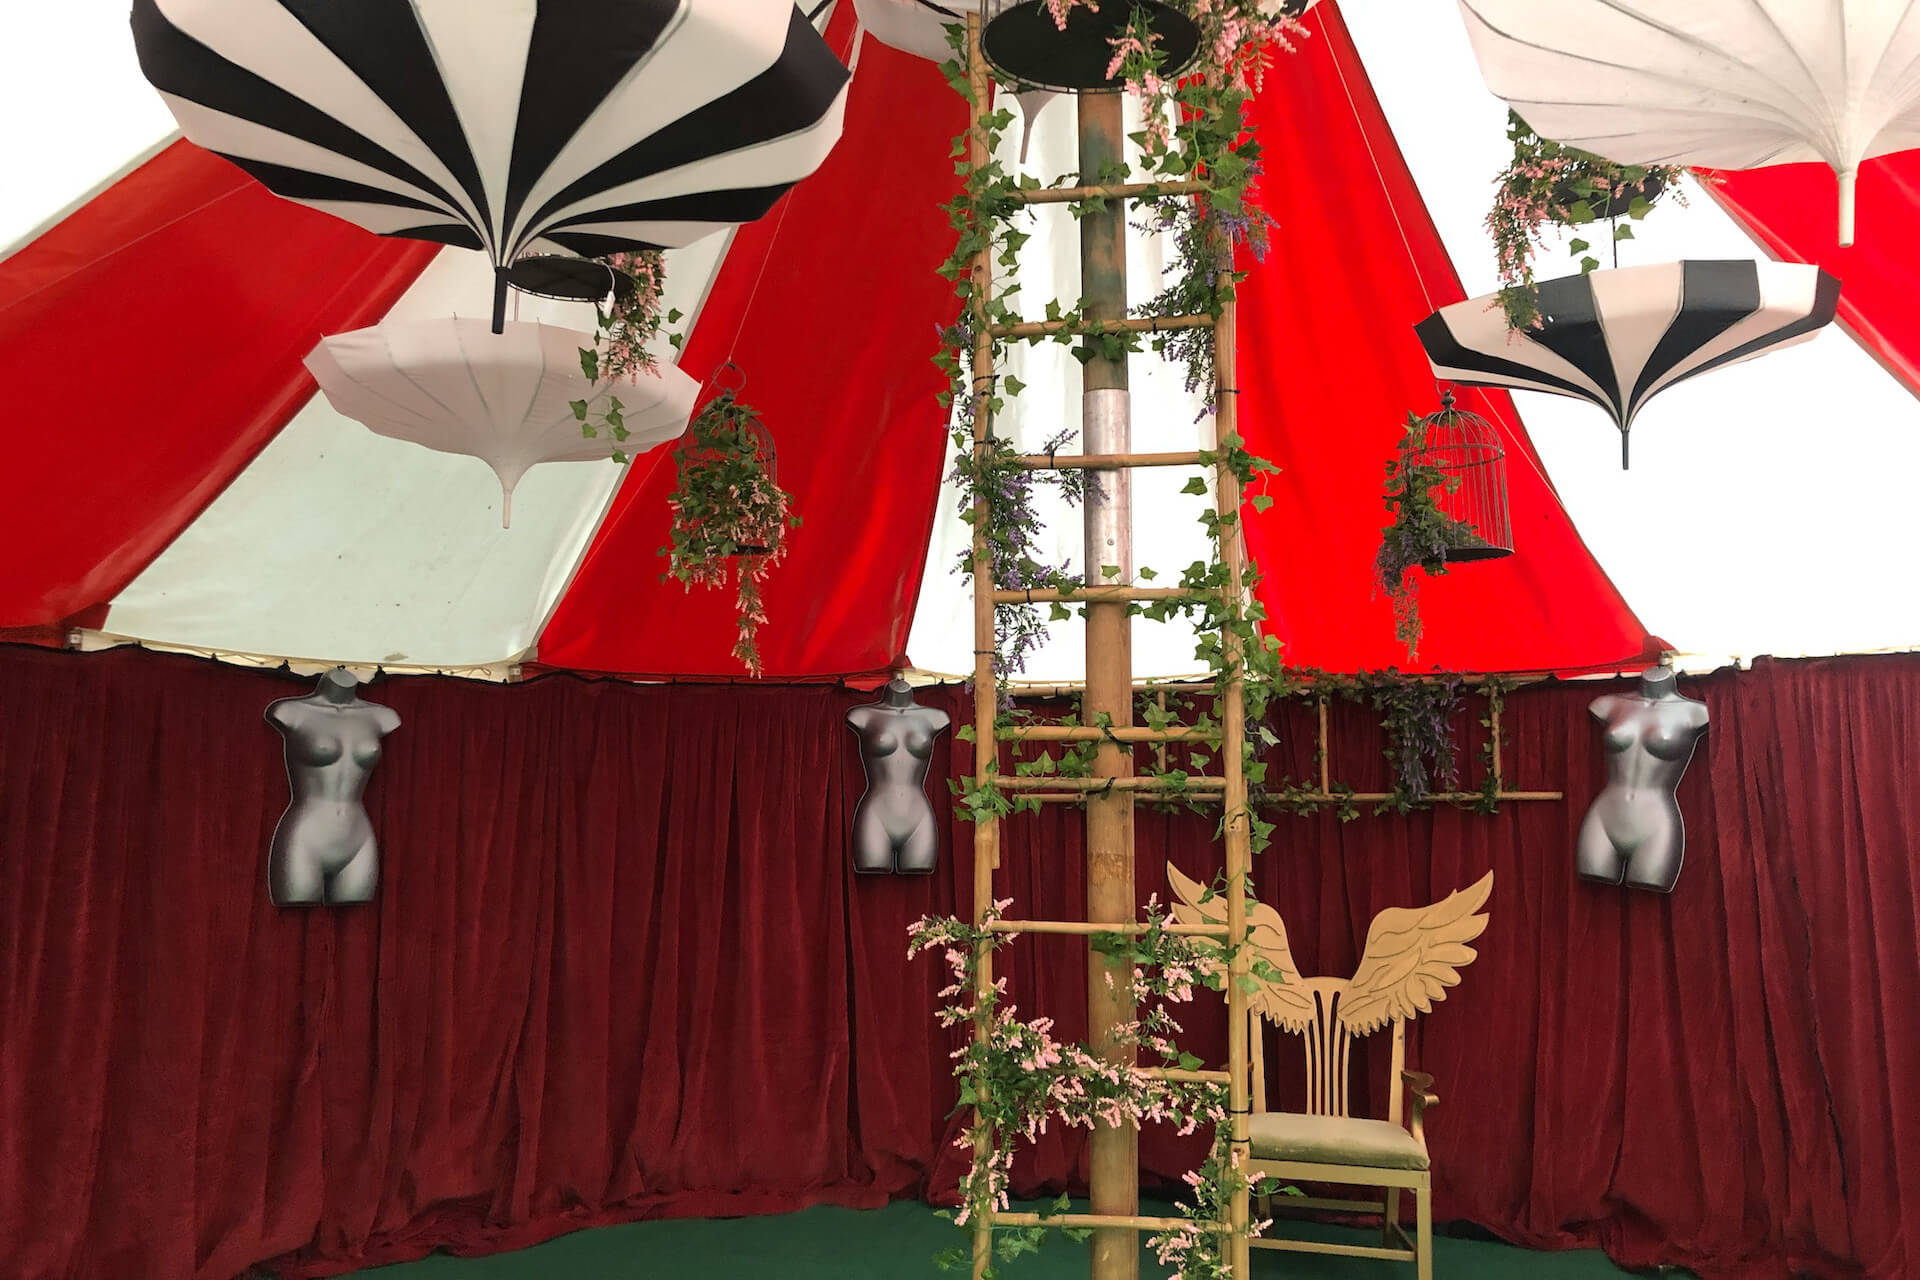 Decorated small tent for plush lounge